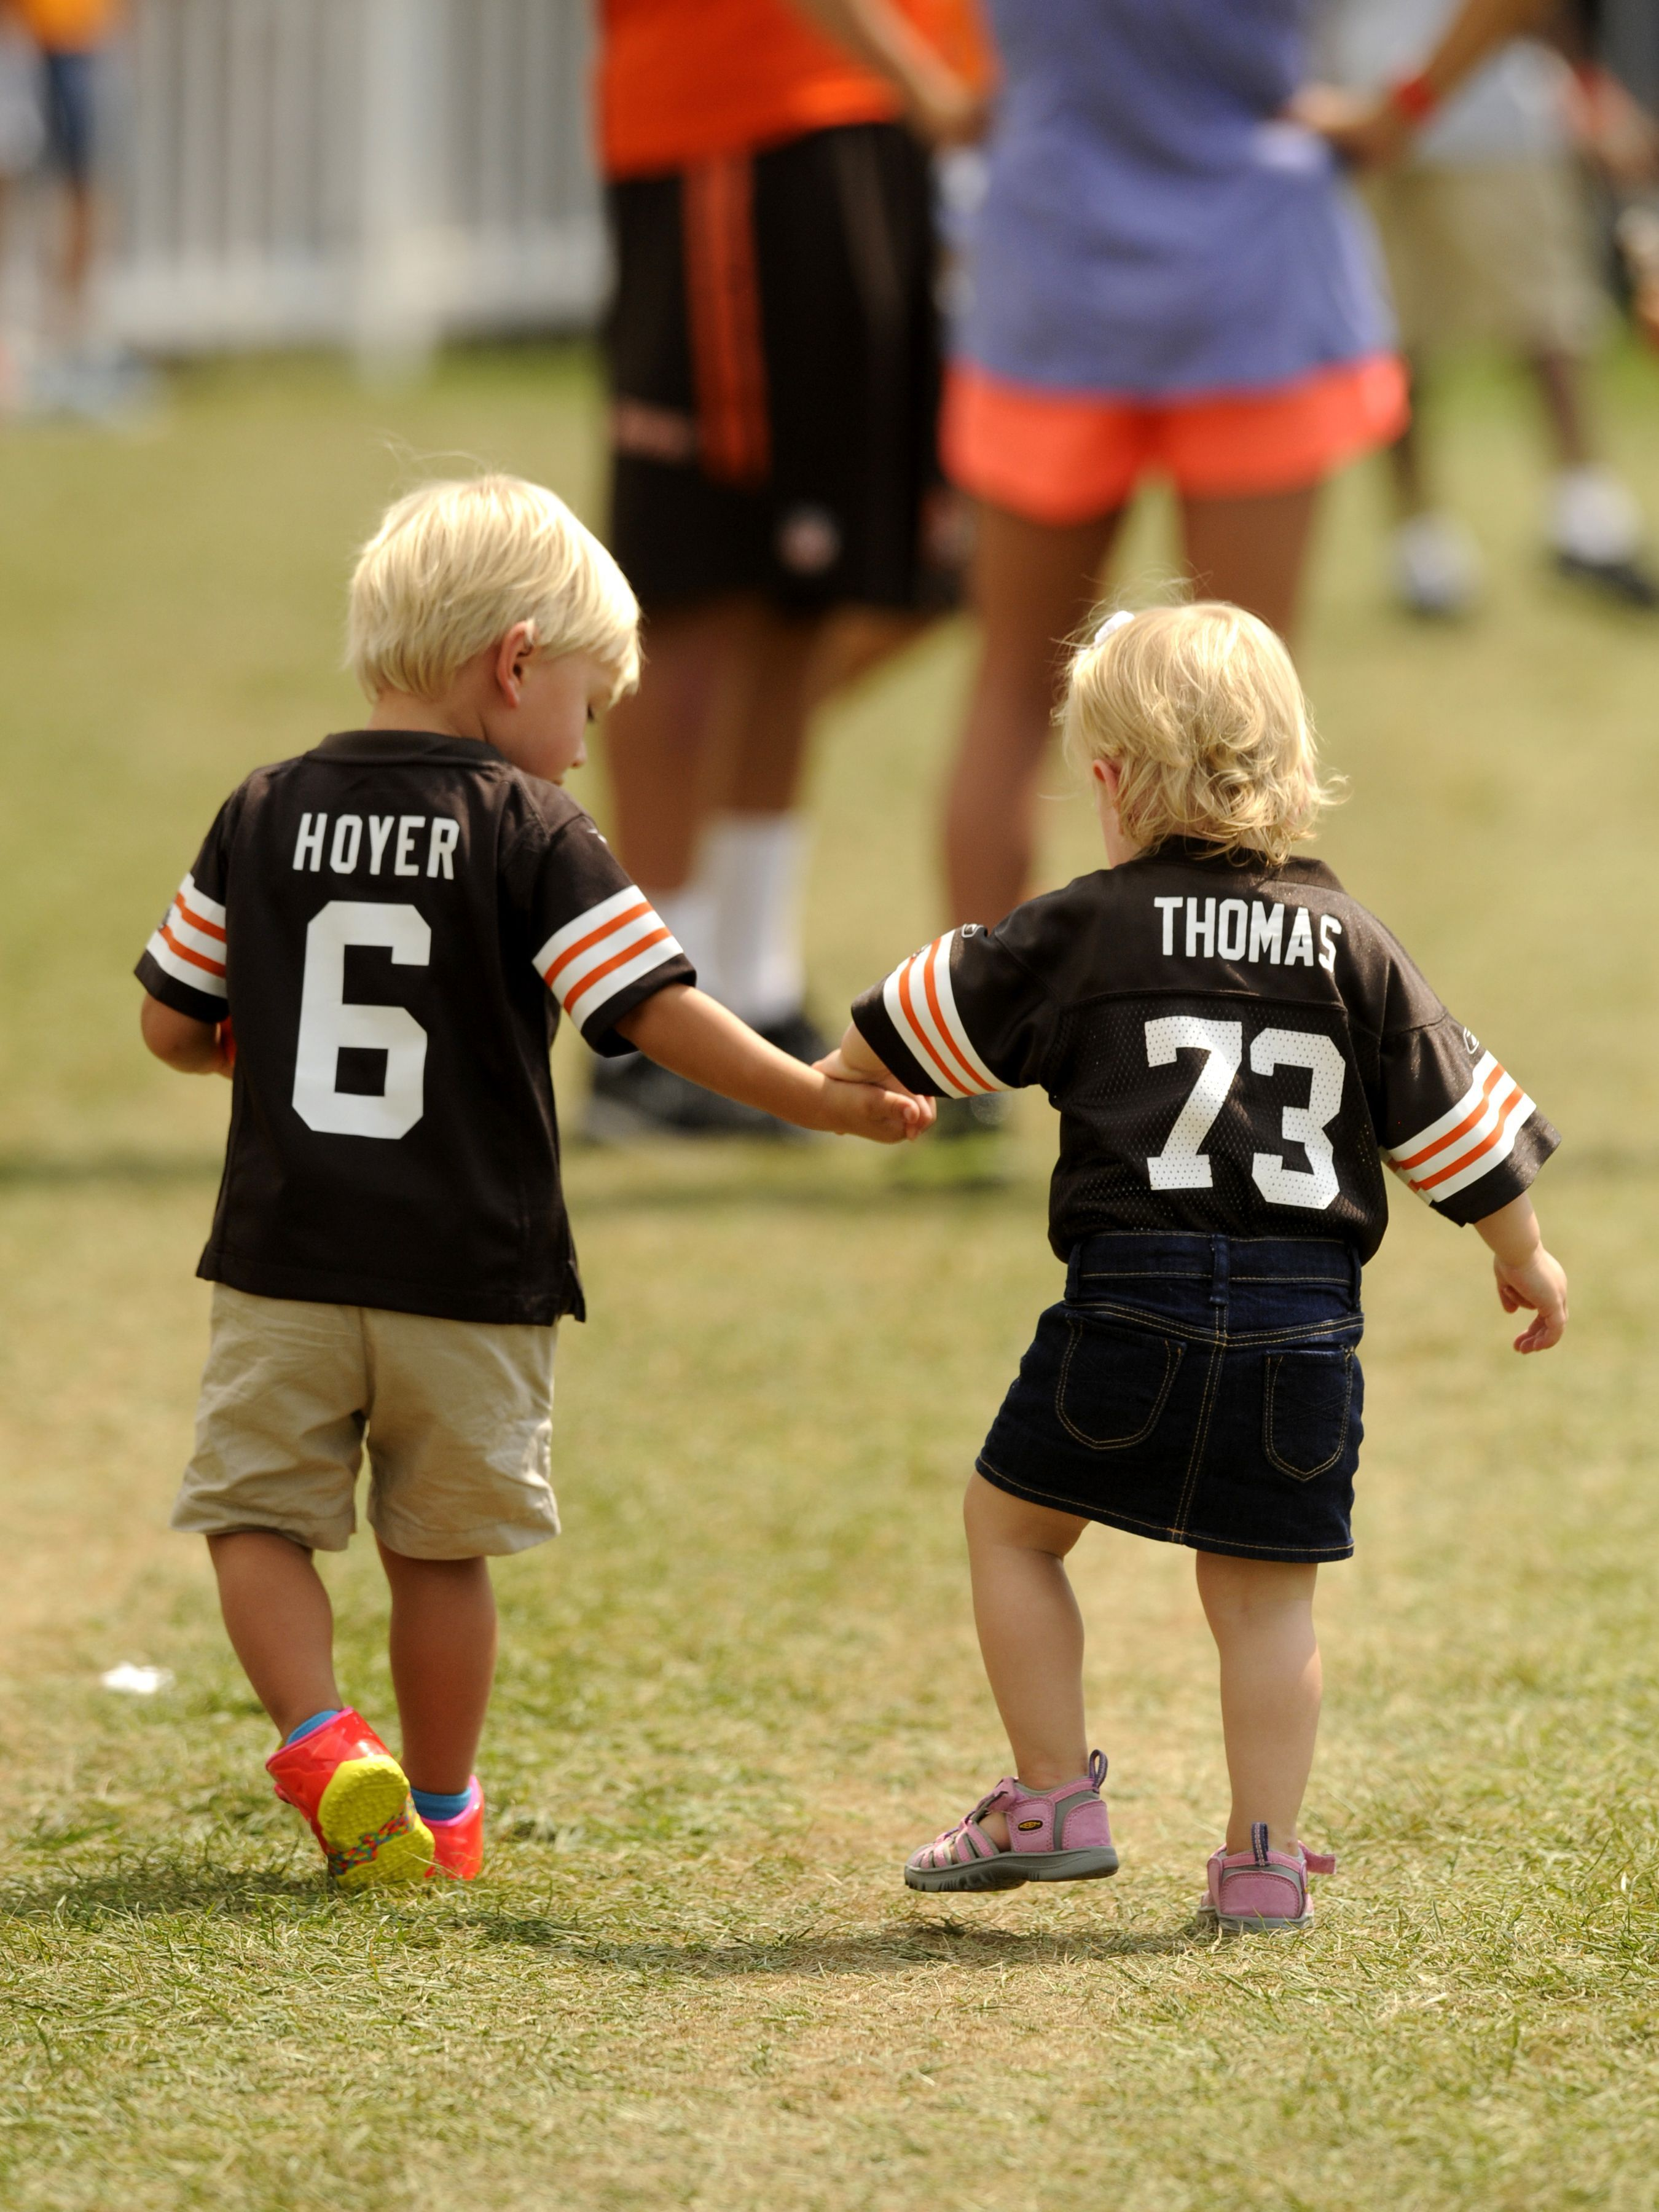 Nfl Dads Players And Their Cute Kids Cute Kids Cute Kids Photos Players